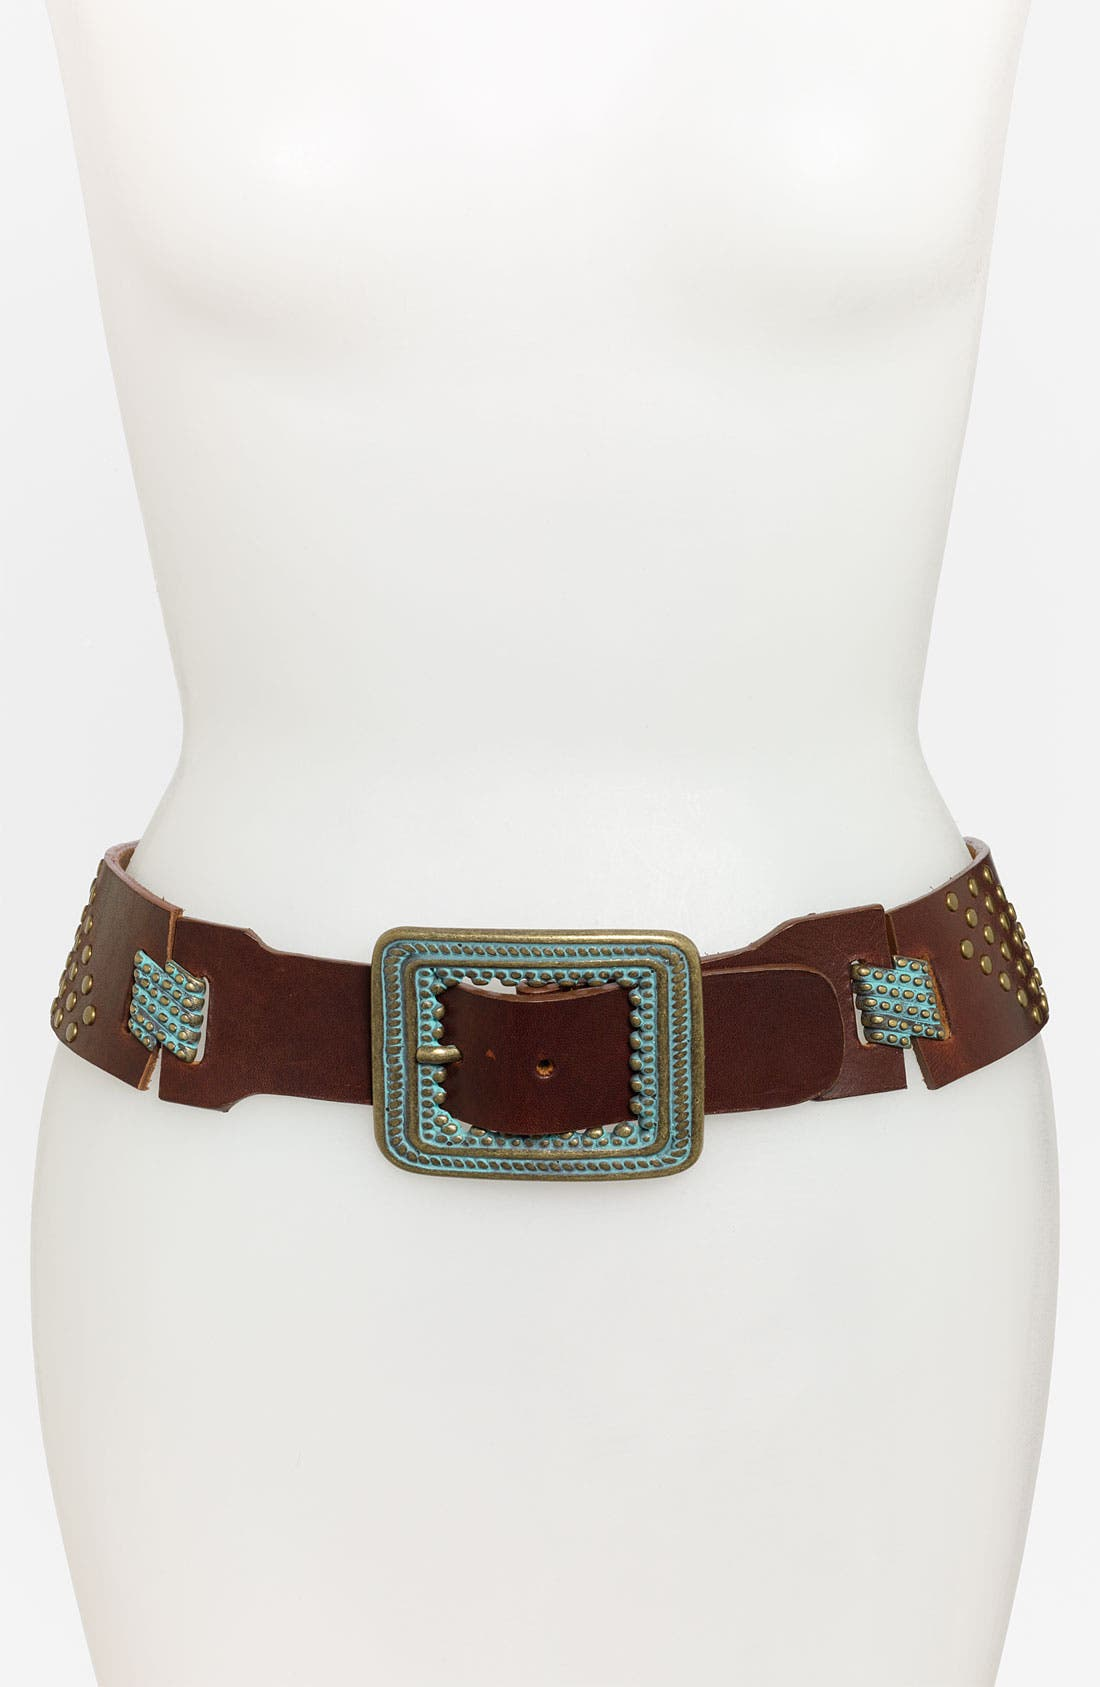 Alternate Image 1 Selected - Leatherock Leather Belt